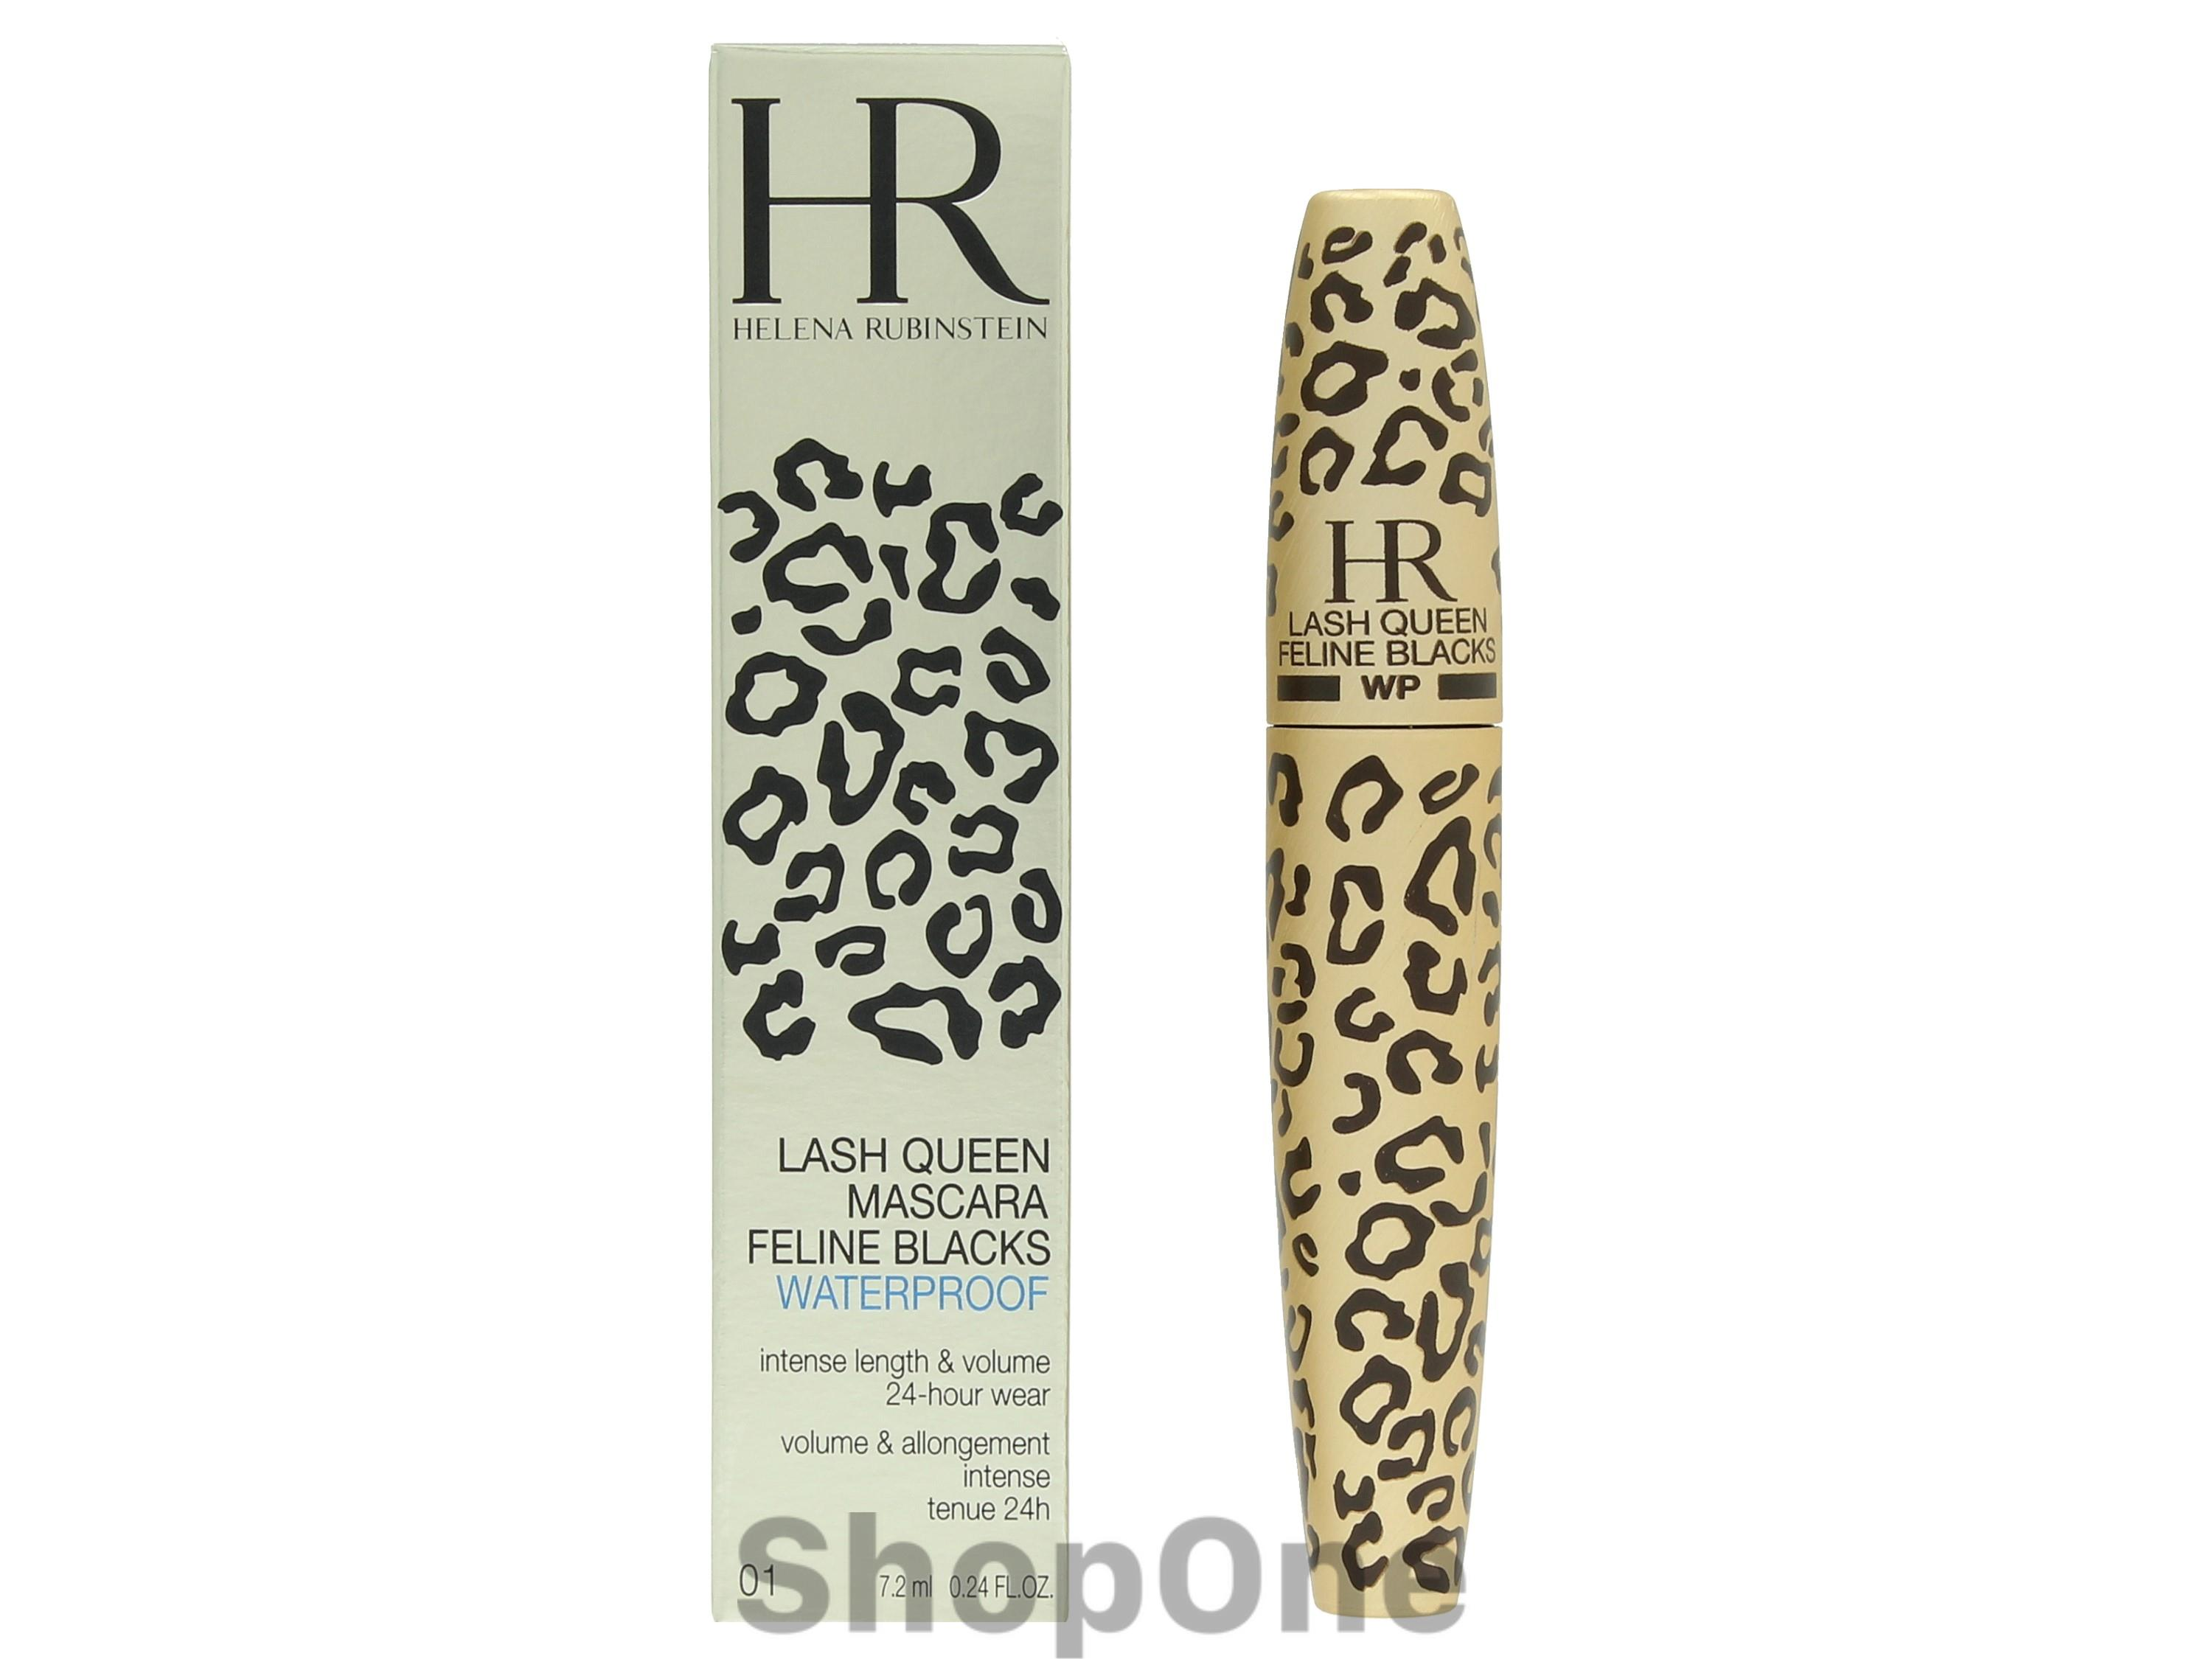 Image of   HR Lash Queen Mascara Feline Blacks Waterproof 7 ml fra Helena Rubinstein